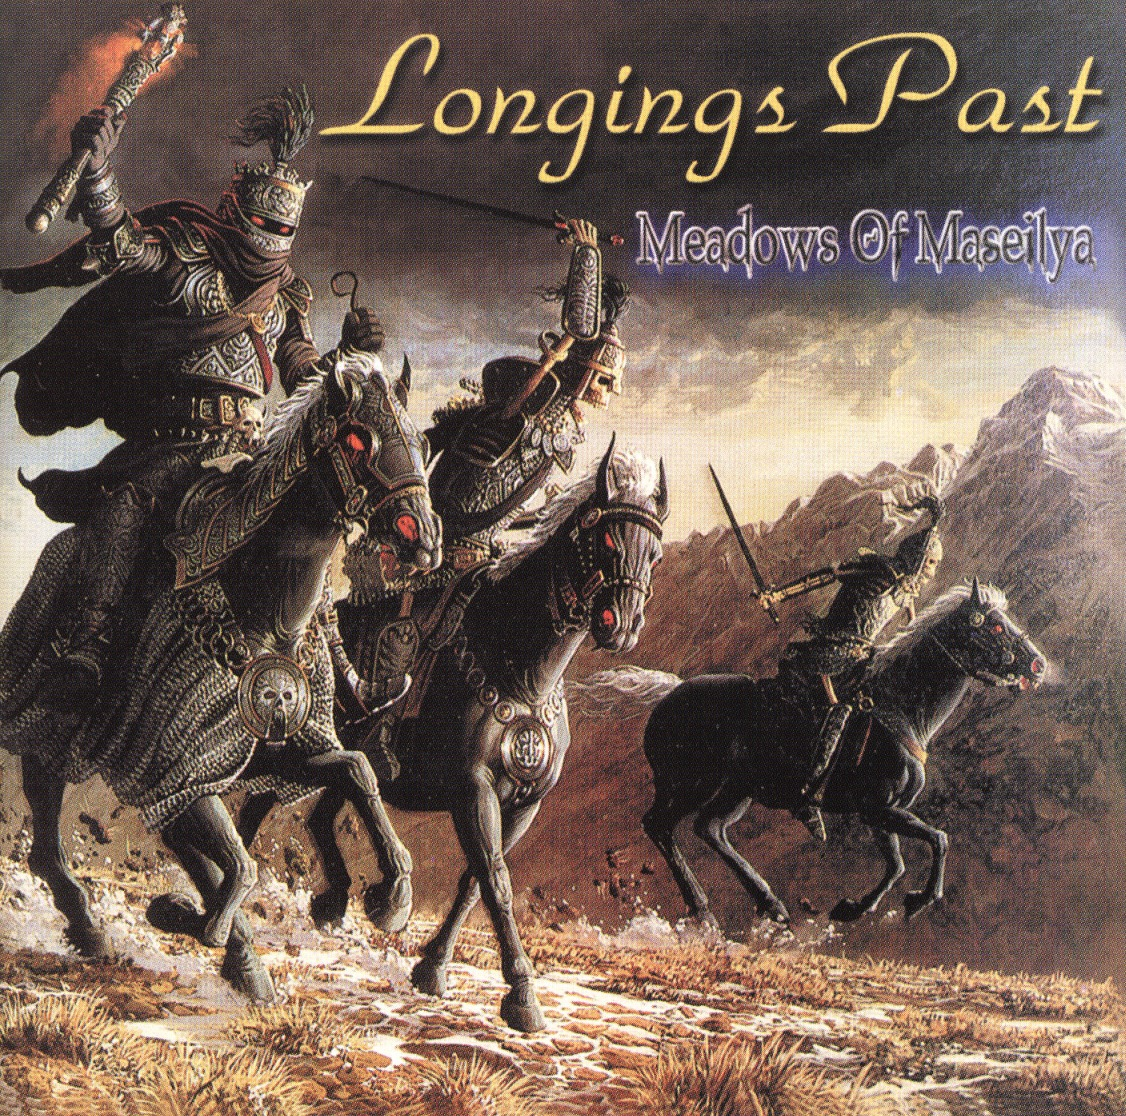 LONGINGS PAST (US) / Meadows Of Maseilya